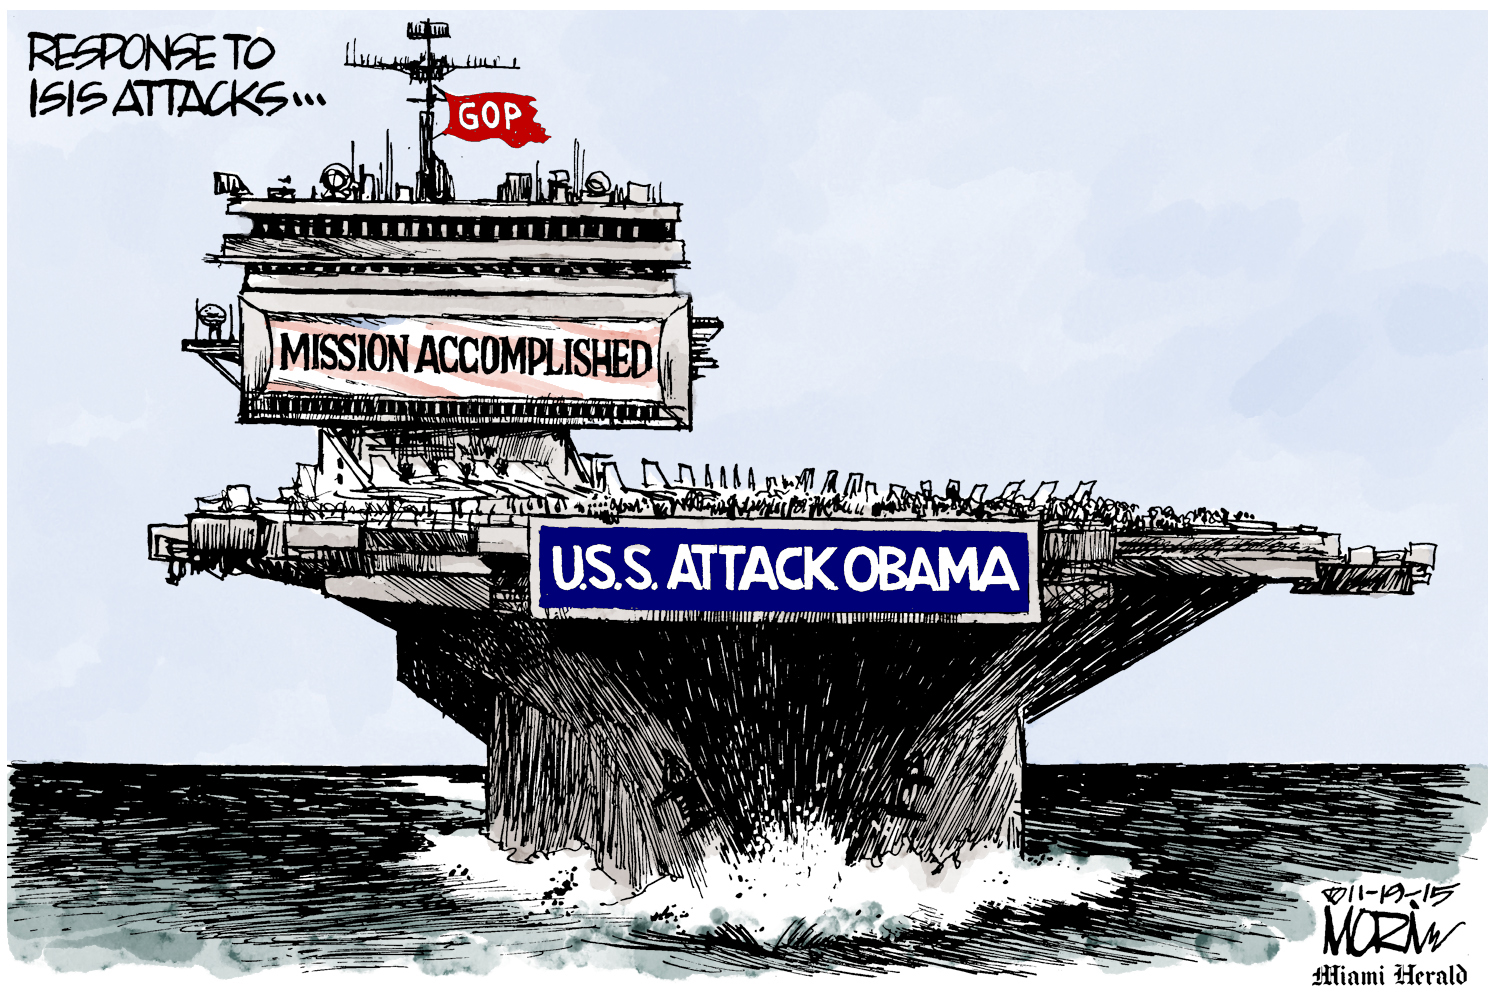 """Morin (USA), published in """"The Miami Herald"""""""